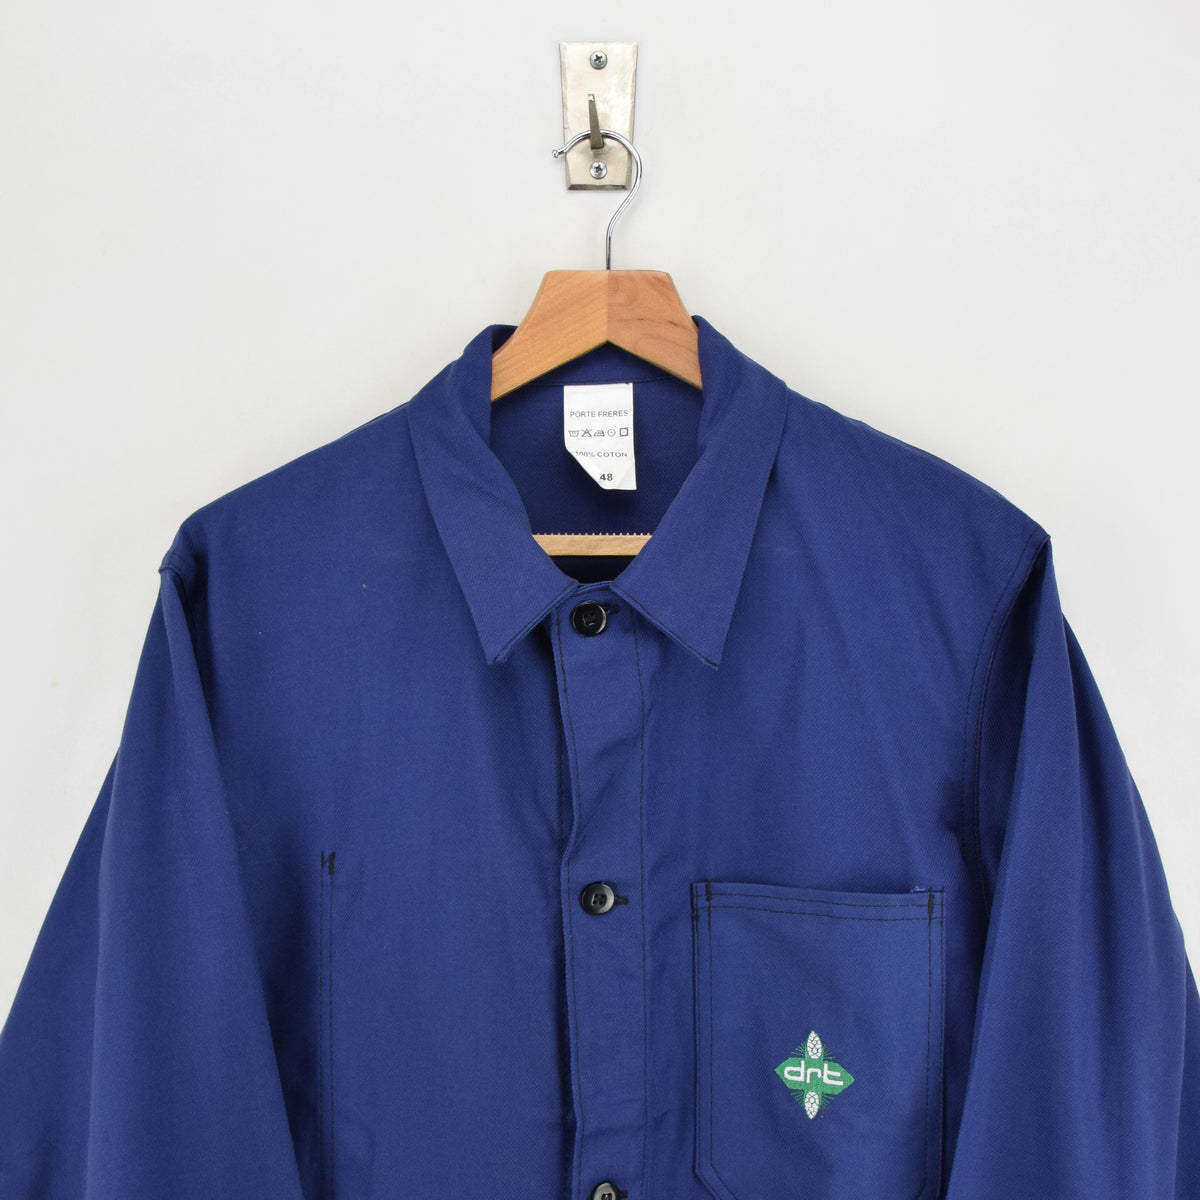 Vintage French Worker Indigo Blue Deadstock Sanforized Cotton Chore Jacket M chest